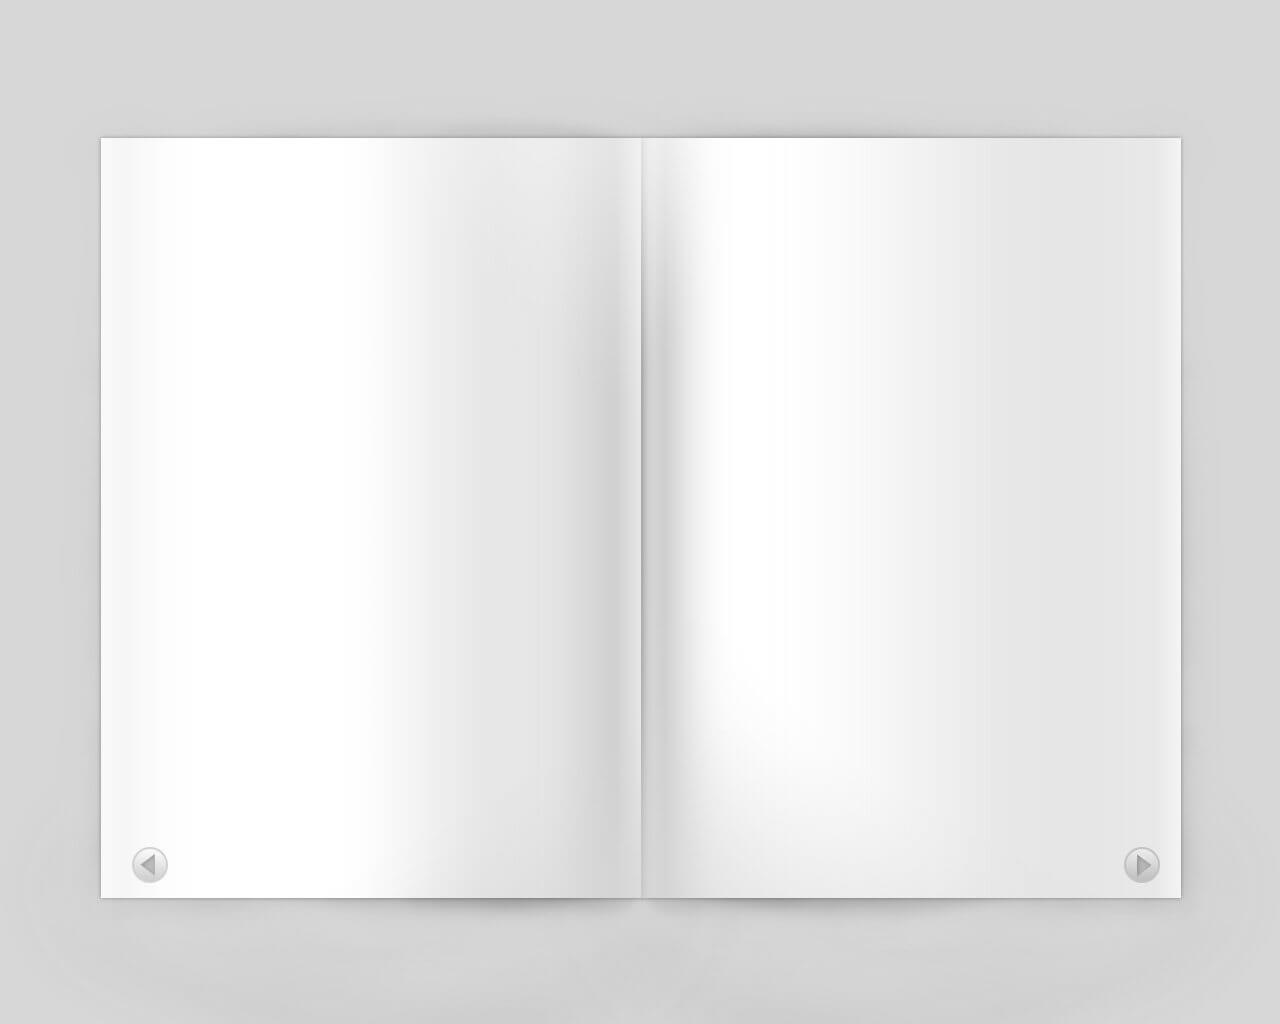 13 Magazine Page Psd Template Images - Page Design intended for Blank Magazine Spread Template